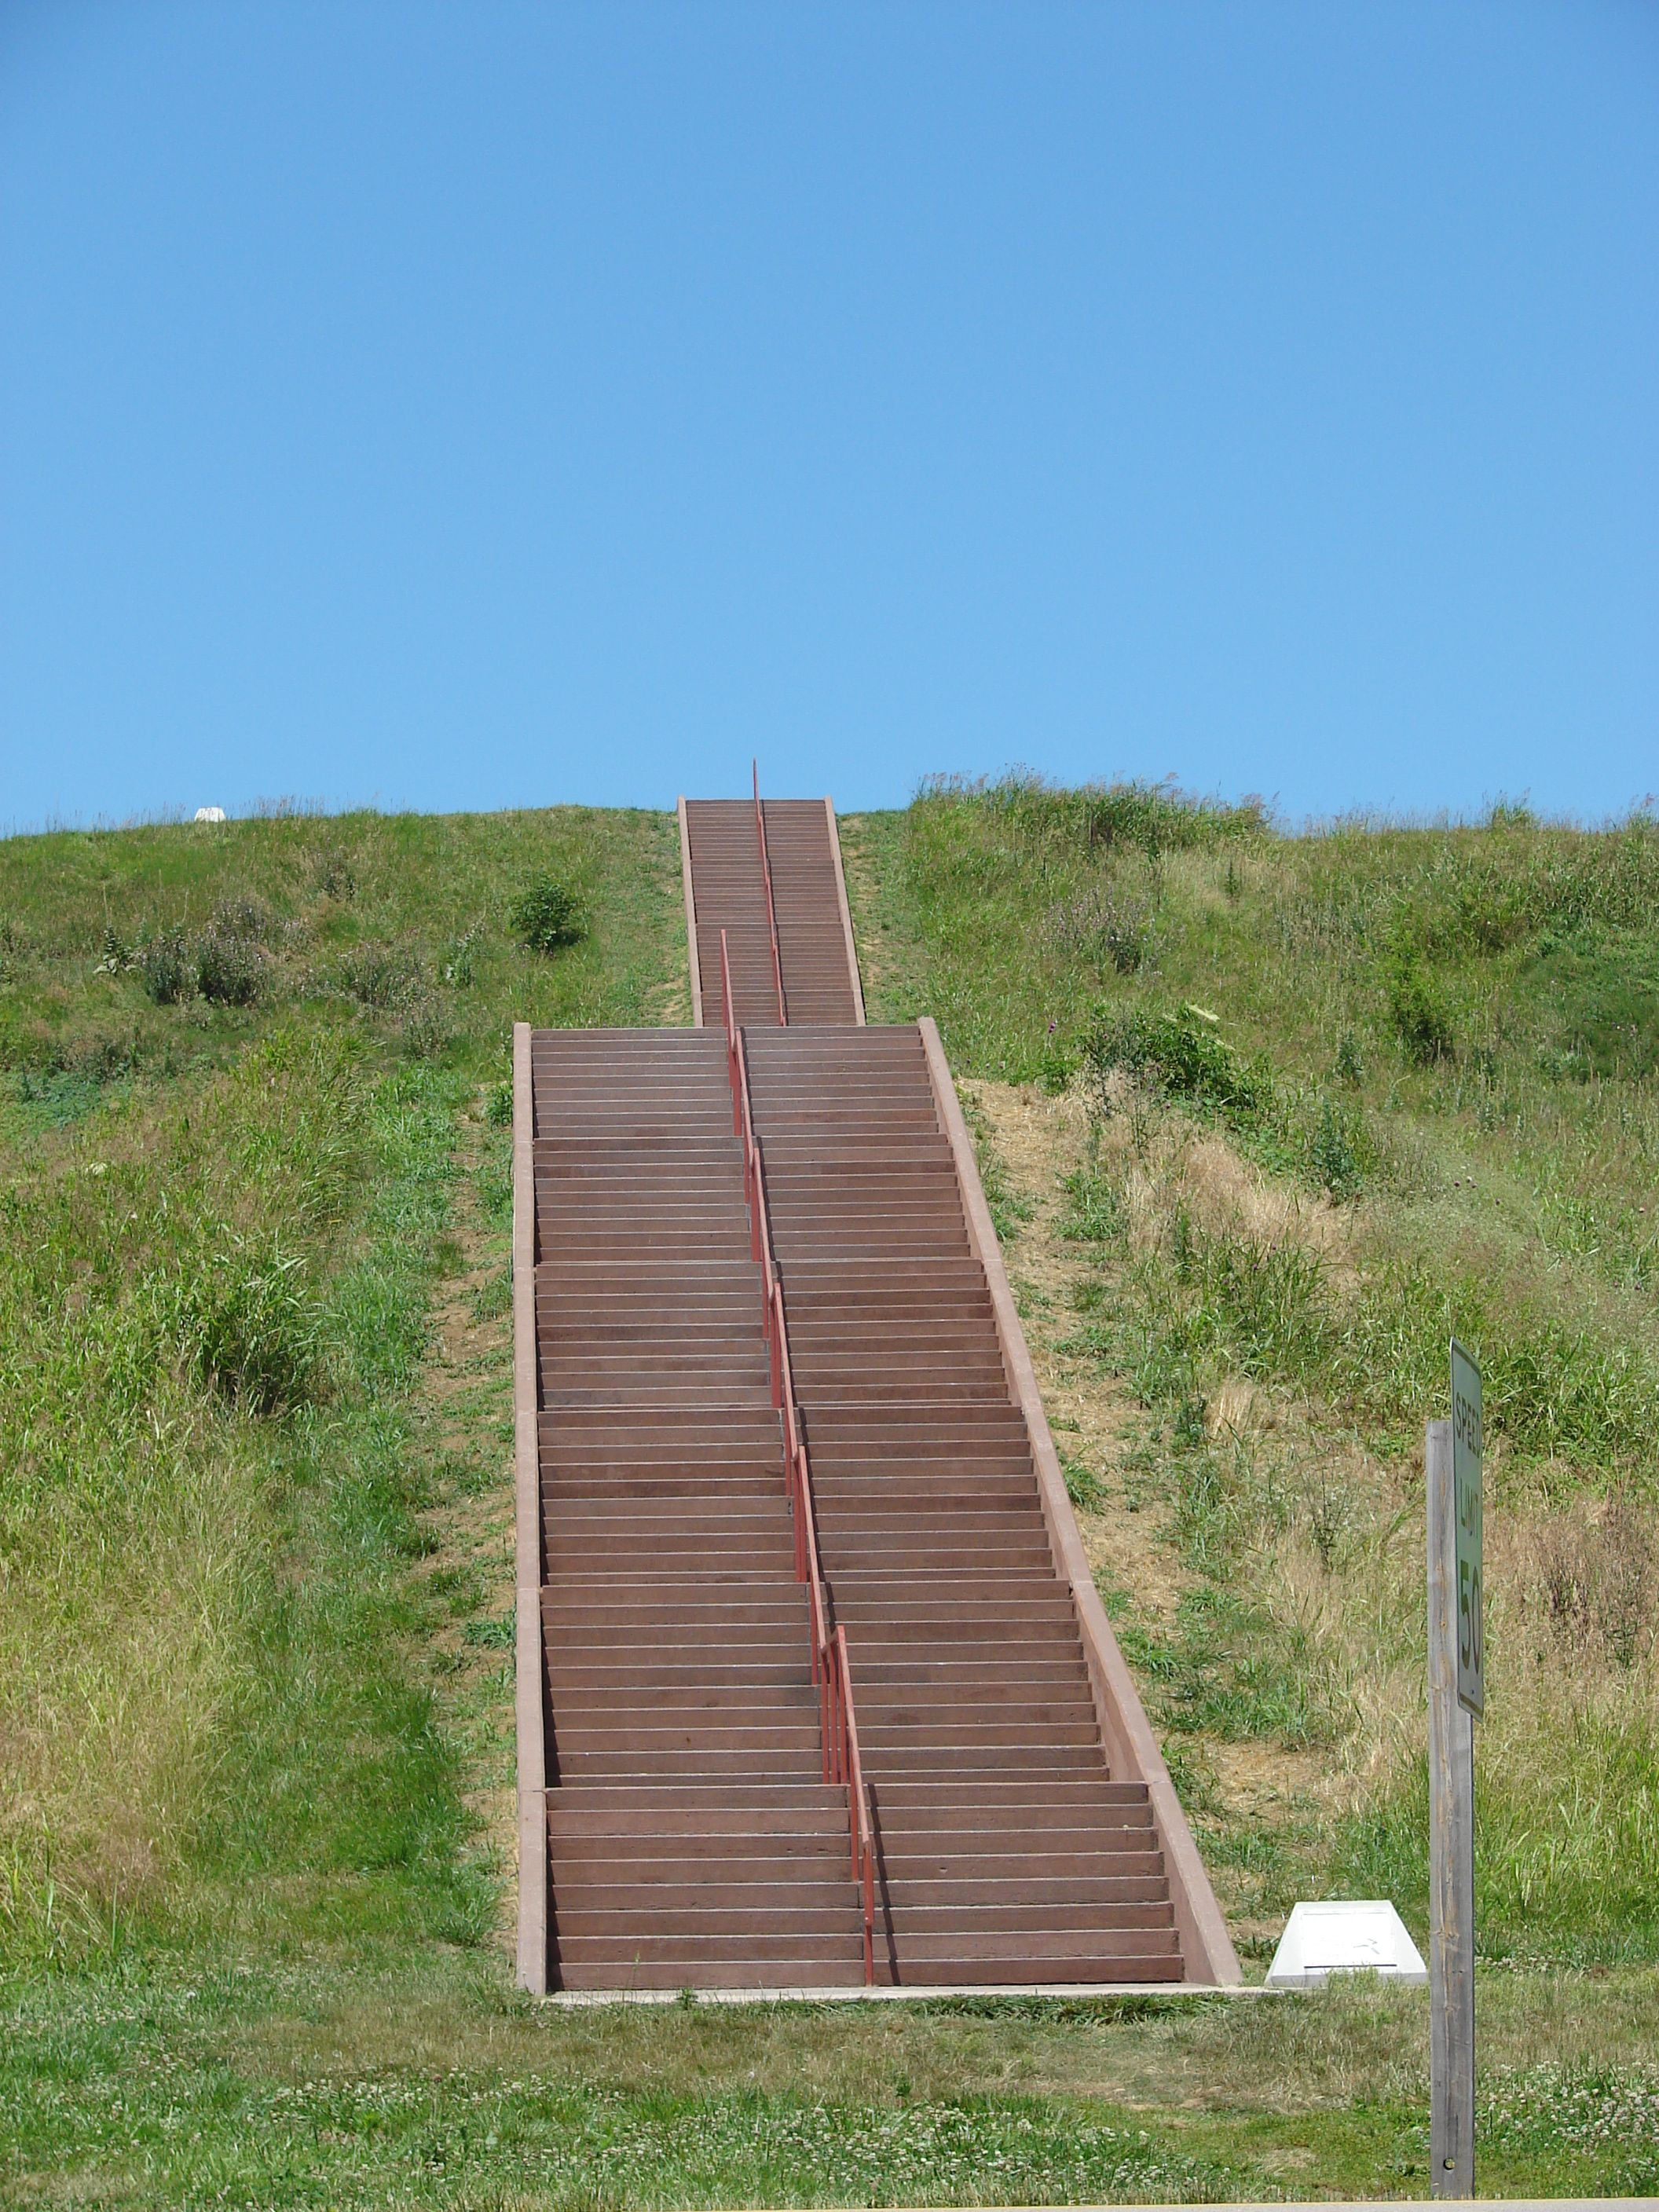 Cahokia mounds 158 steps up places to see indigenous